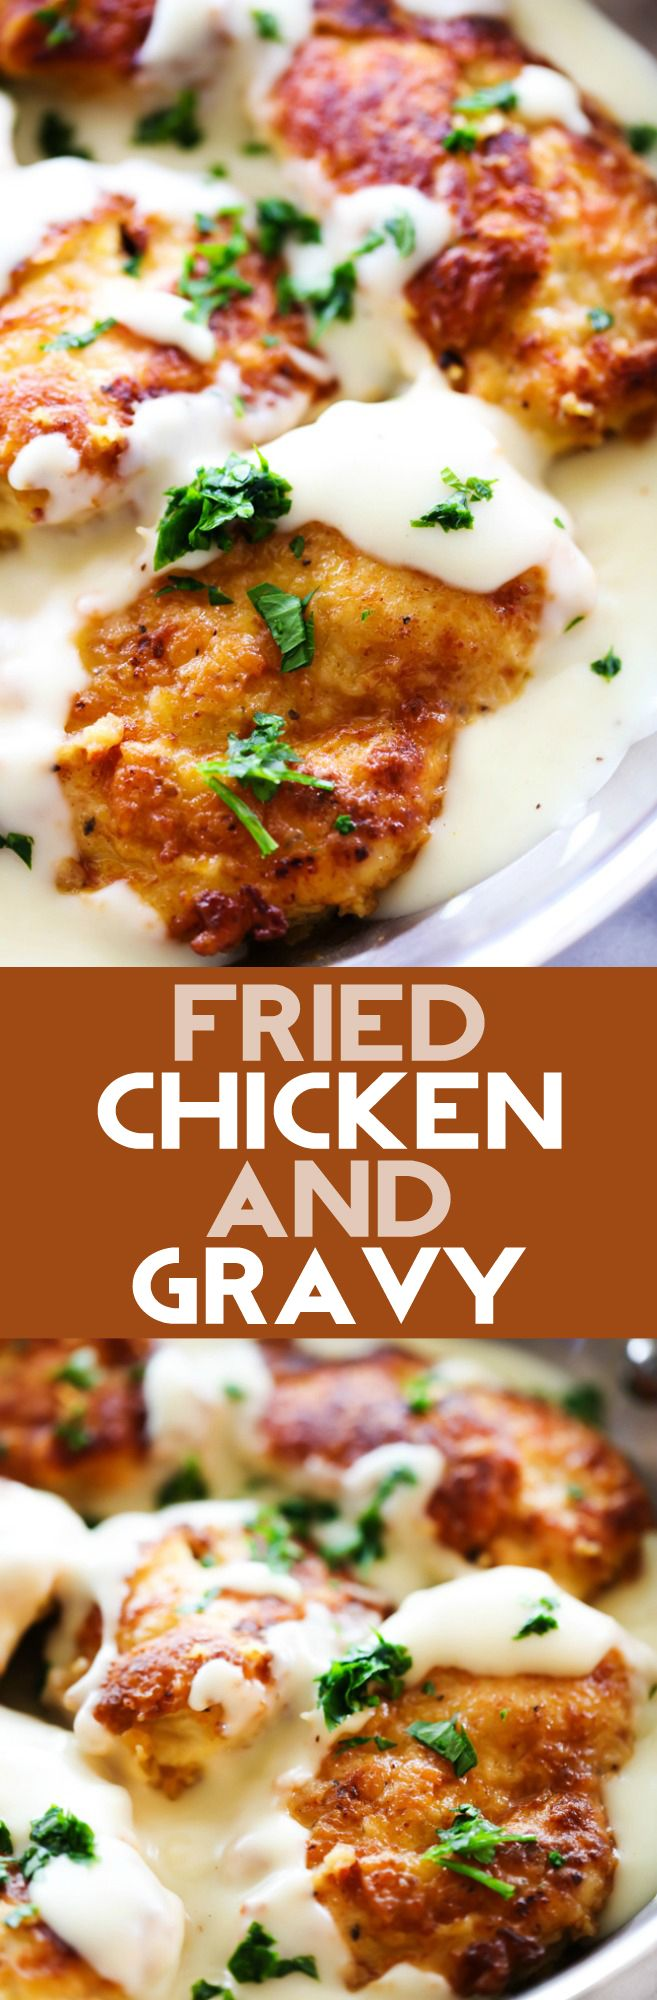 This Fried Chicken and Gravy is so simple and truly a spectacular dish! The chicken has a pan-fried batter that crisps and browns up beautifully and is then baked to tender perfection. The gravy is flavorful and the perfect compliment to the chicken.